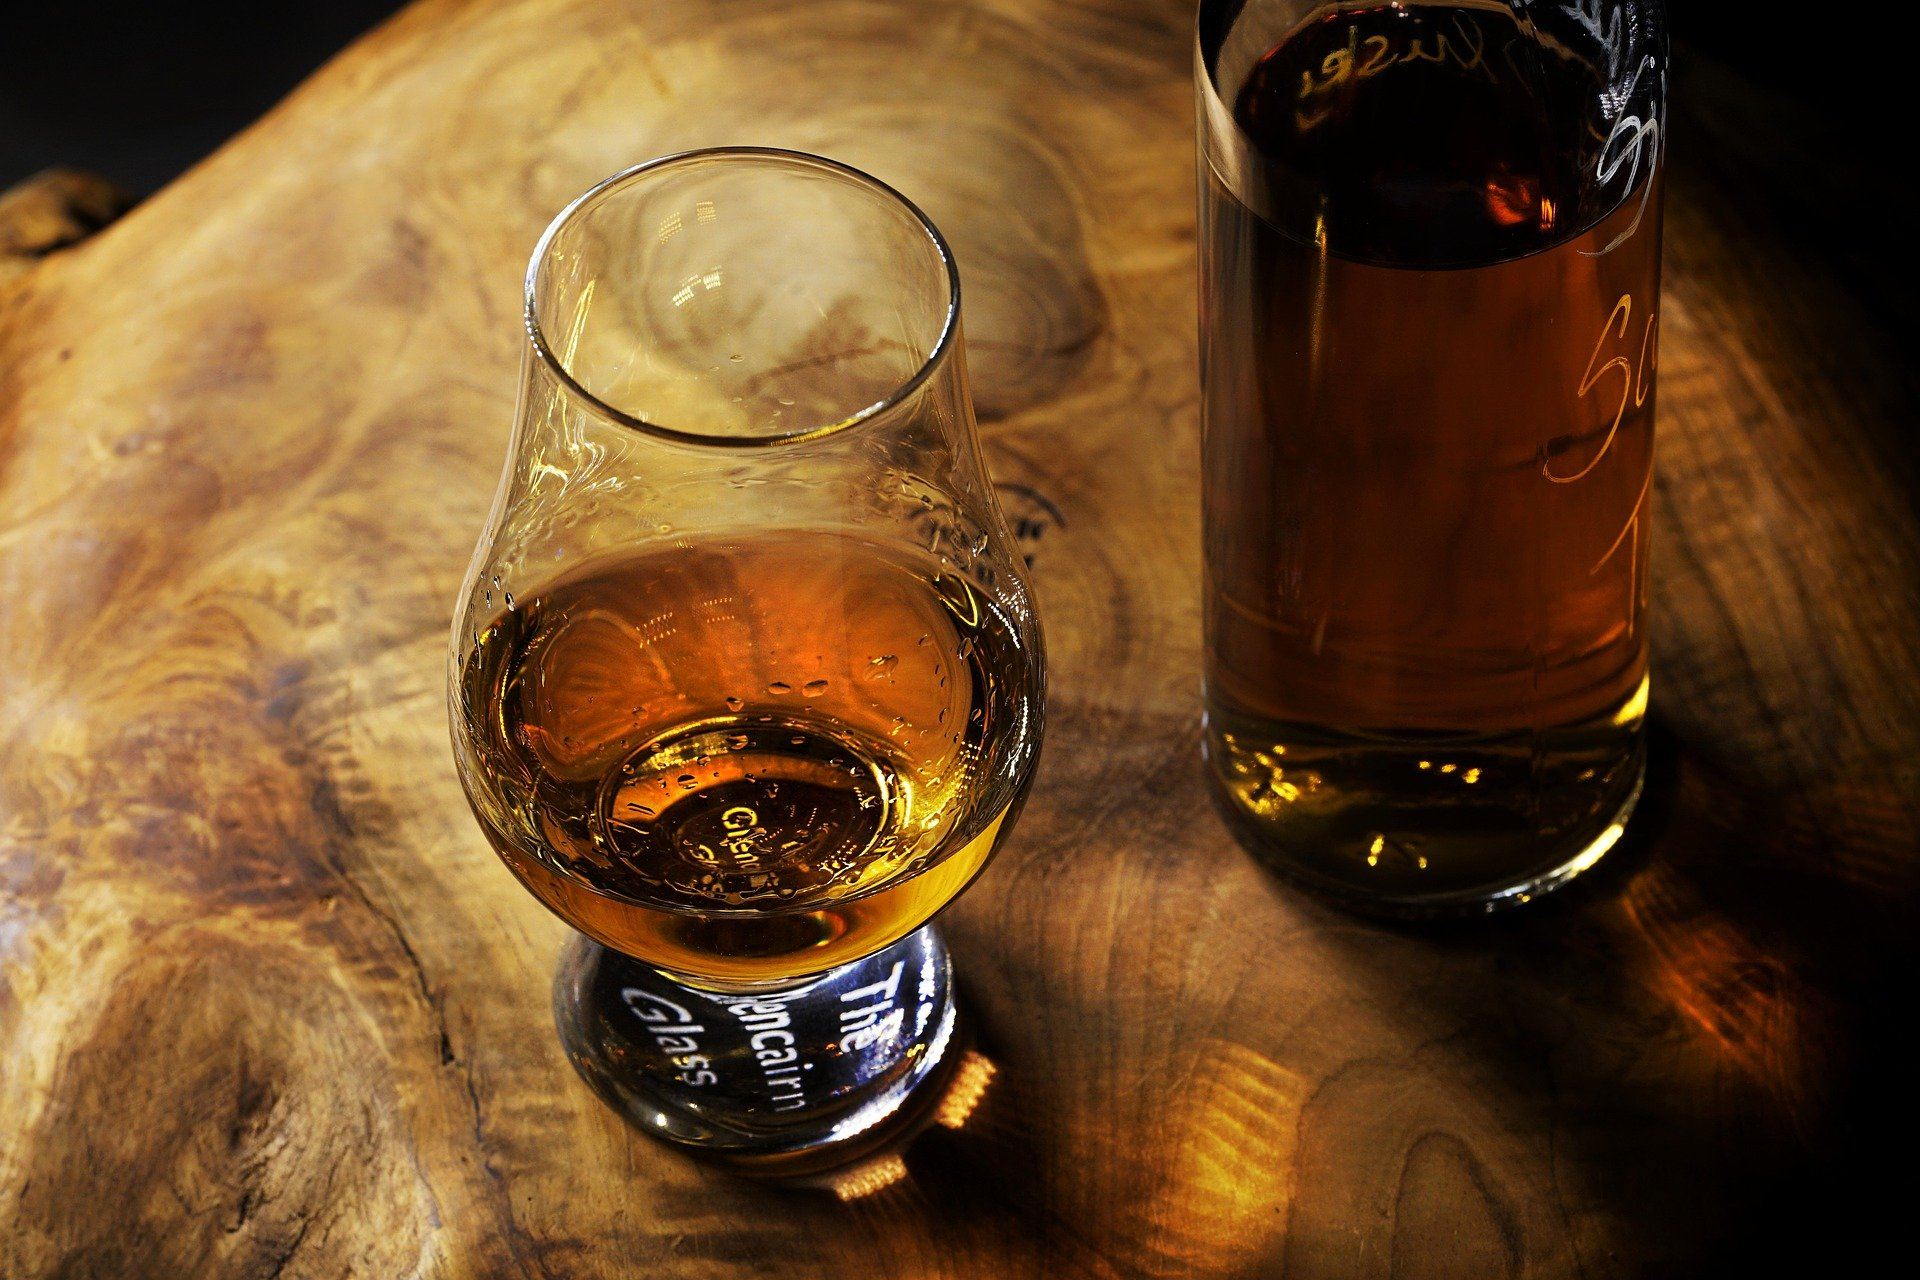 An image of whisky - Business News Scotland